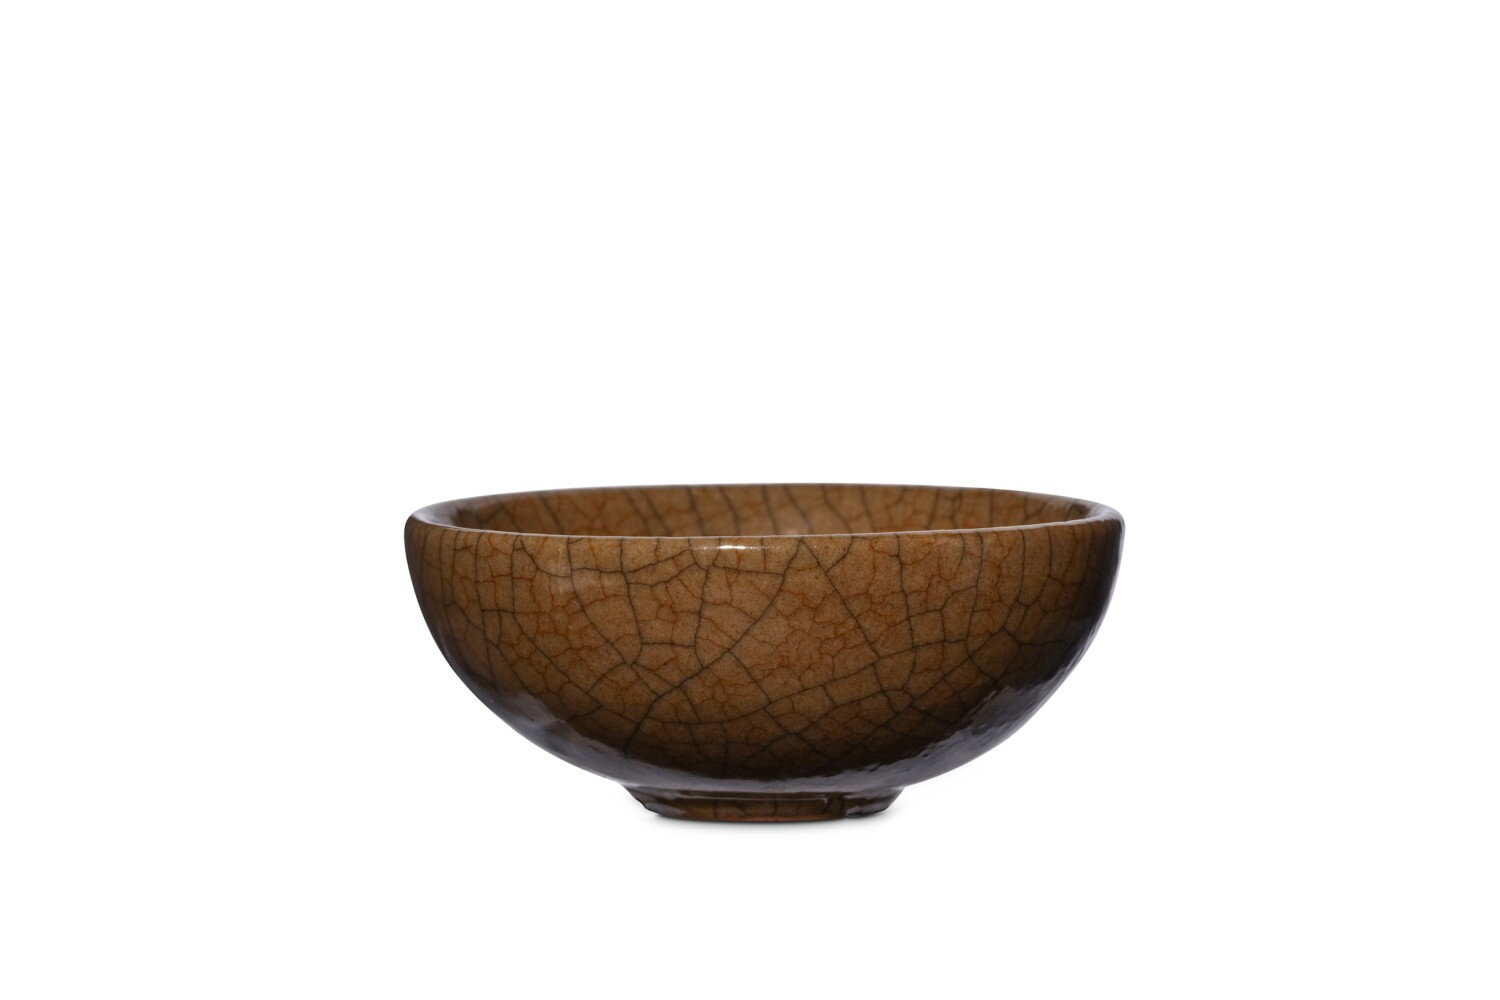 A Chinese Guan-type bowl, Yuan-early Ming Dynasty